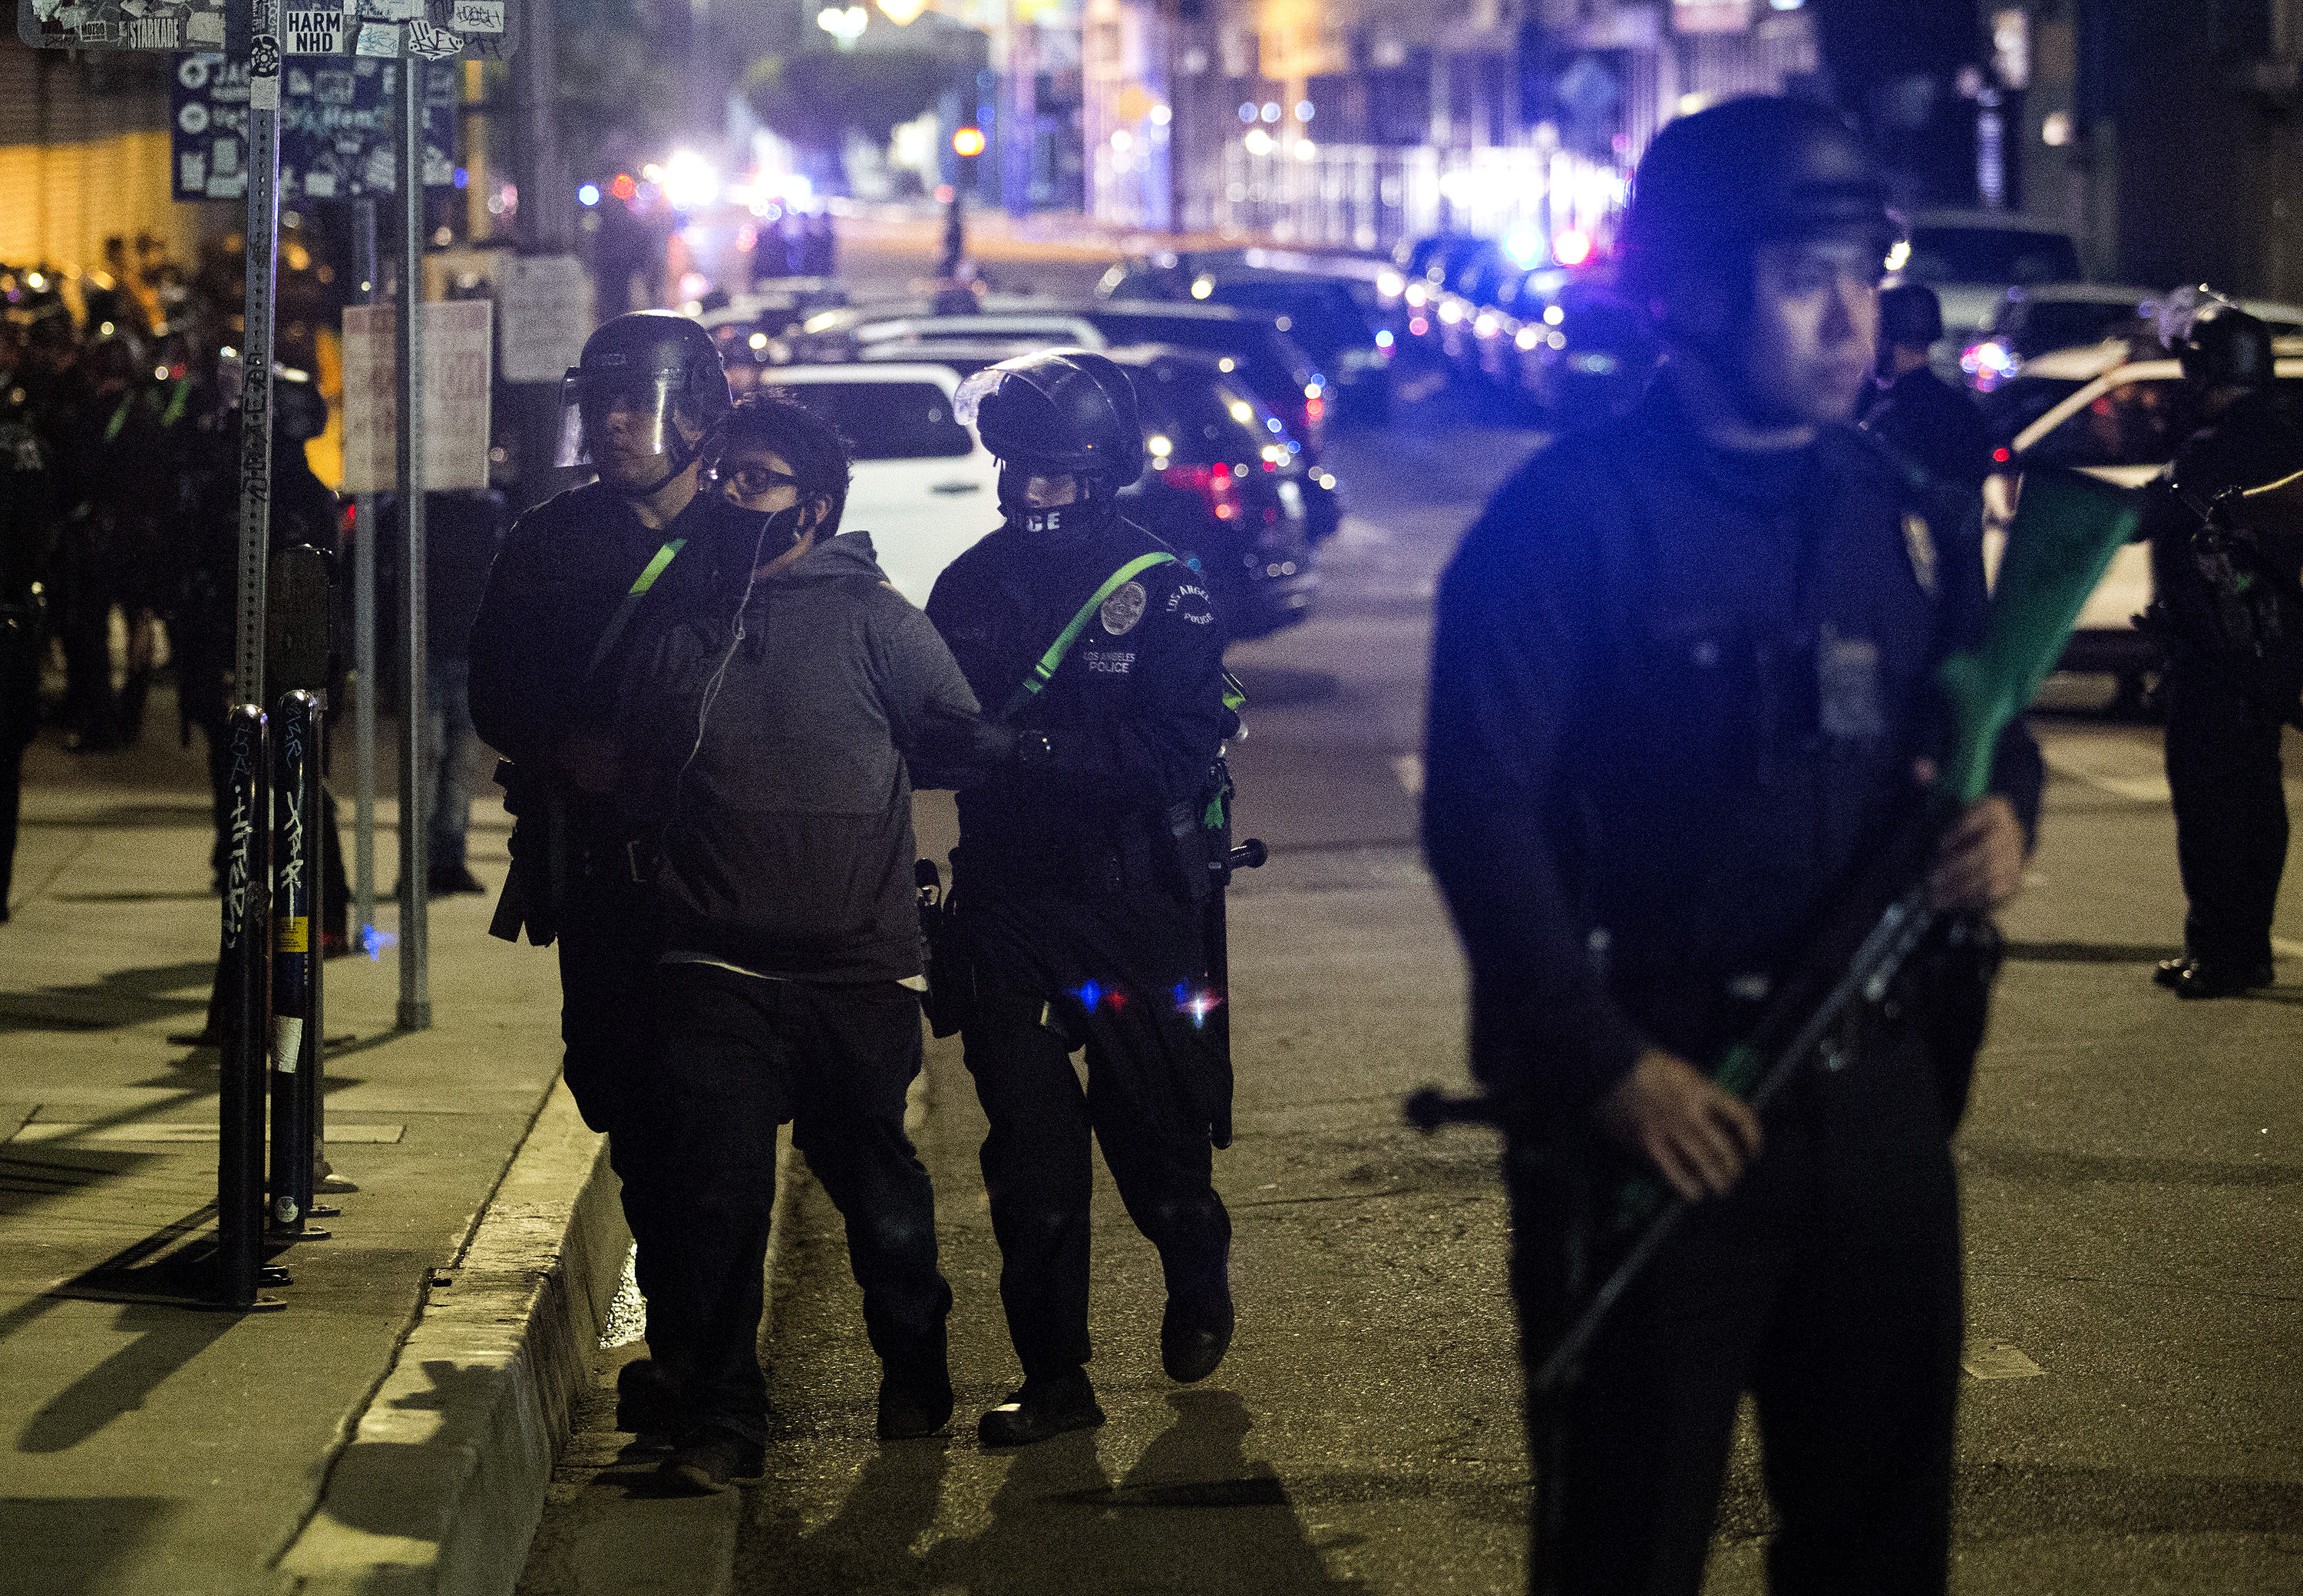 Police officers arrest a protester Sunday, May 31, 2020, in Los Angeles, during a protest over the death of George Floyd, who died May 25 after he was pinned at the neck by a Minneapolis police officer. (AP Photo/Ringo H.W. Chiu)